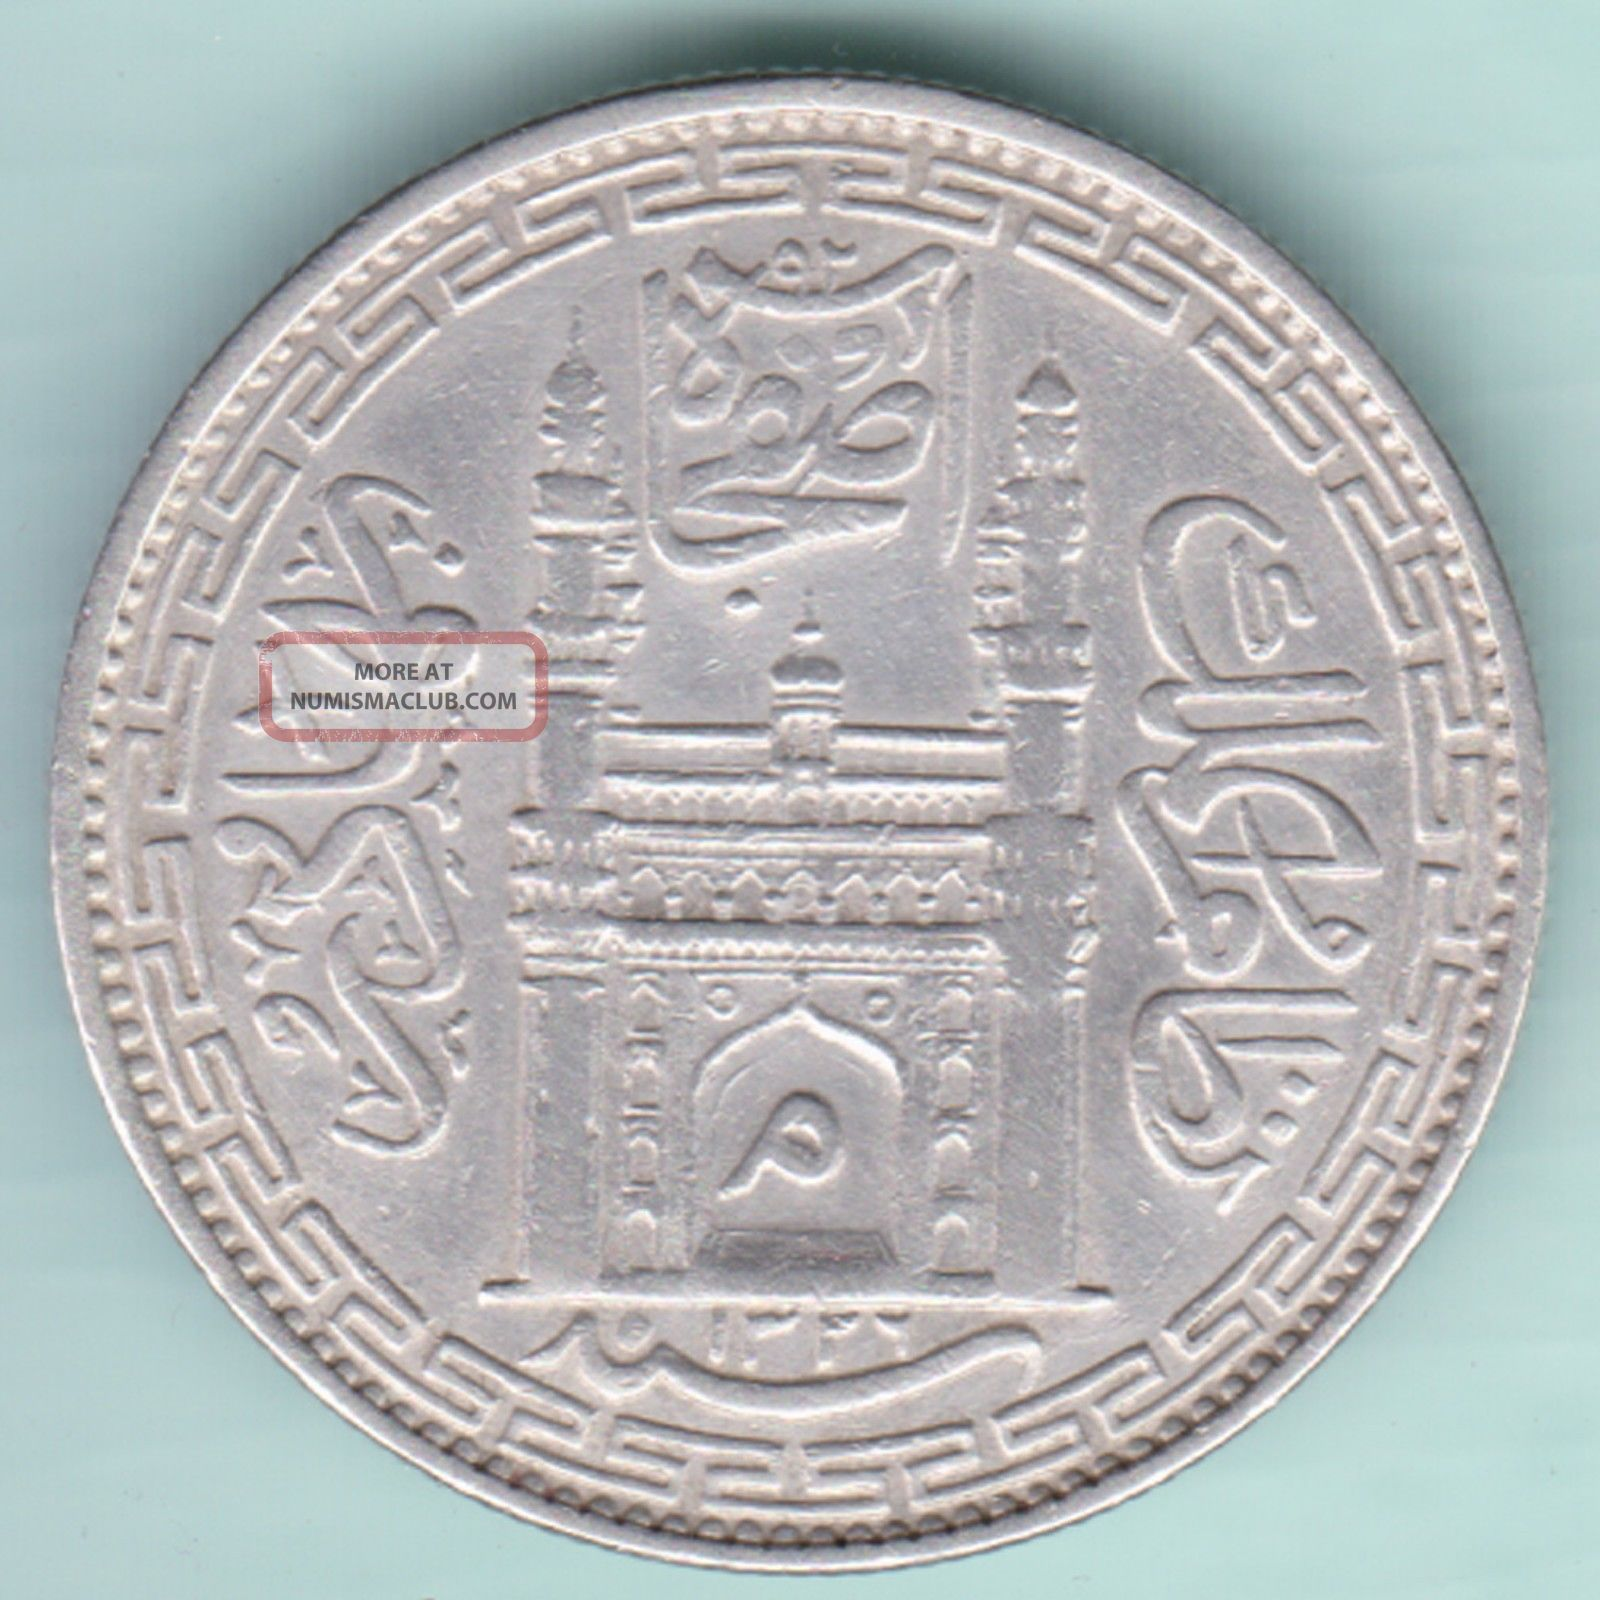 Hyderabad State - Ah 1326 - Mim On Doorway - One Rupee - Rare Silver Coin India photo